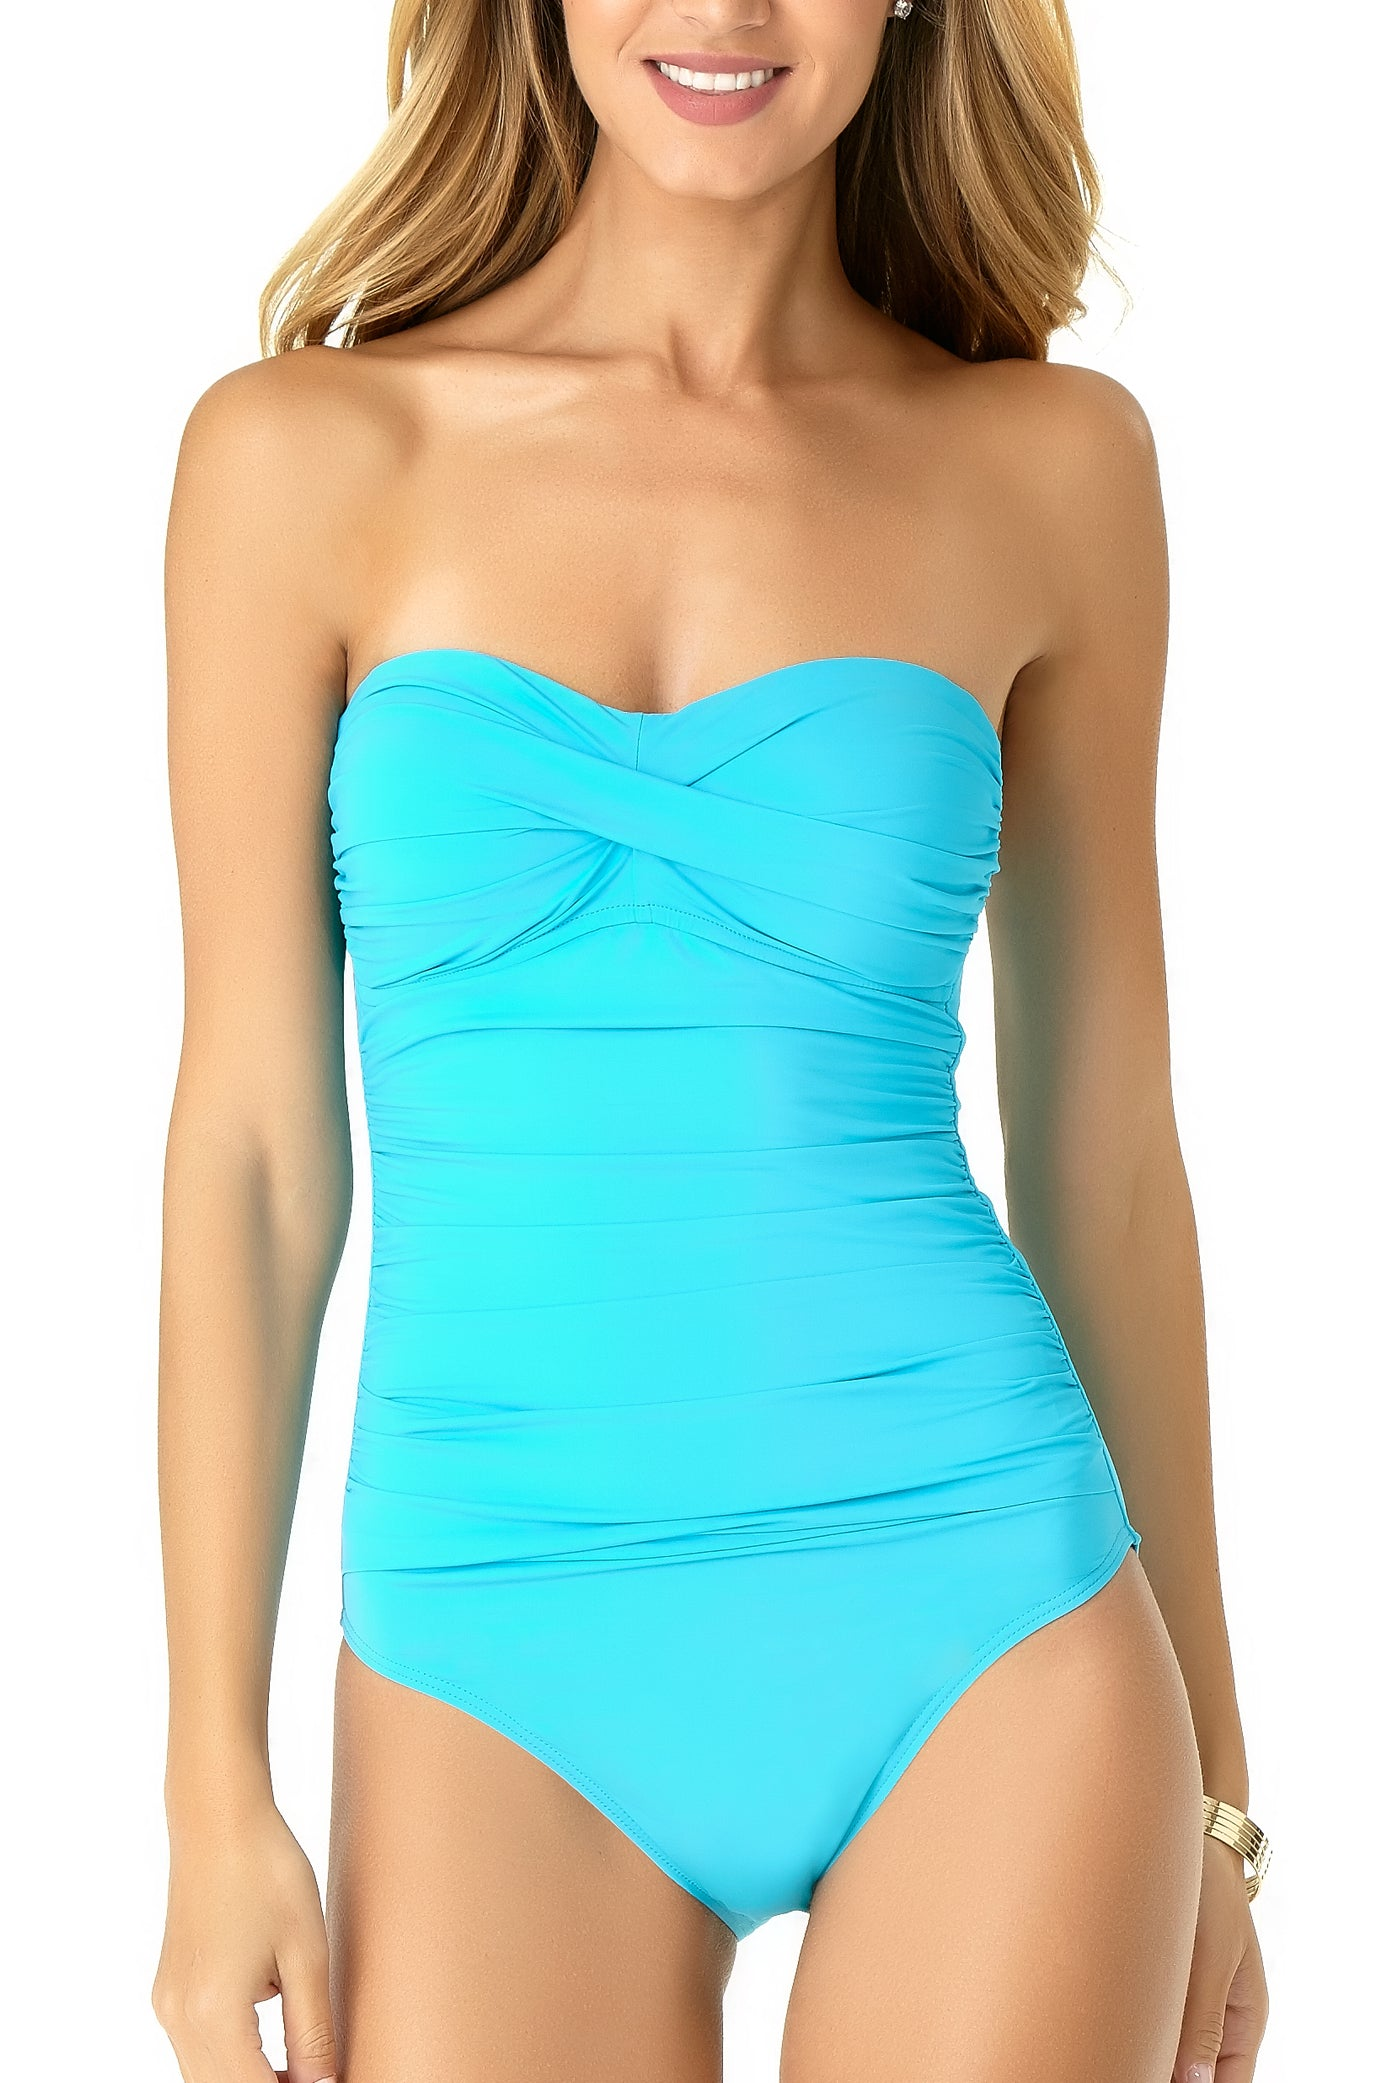 Fabric Content: 82% Nylon/ 18% Spandex Twist front Bandeau One Piece Higher leg cut Slightly shorter torso Front Shirred Details Slim fitting Adjustable and Removable straps Non Removable Cups Product Number: 19MO00501